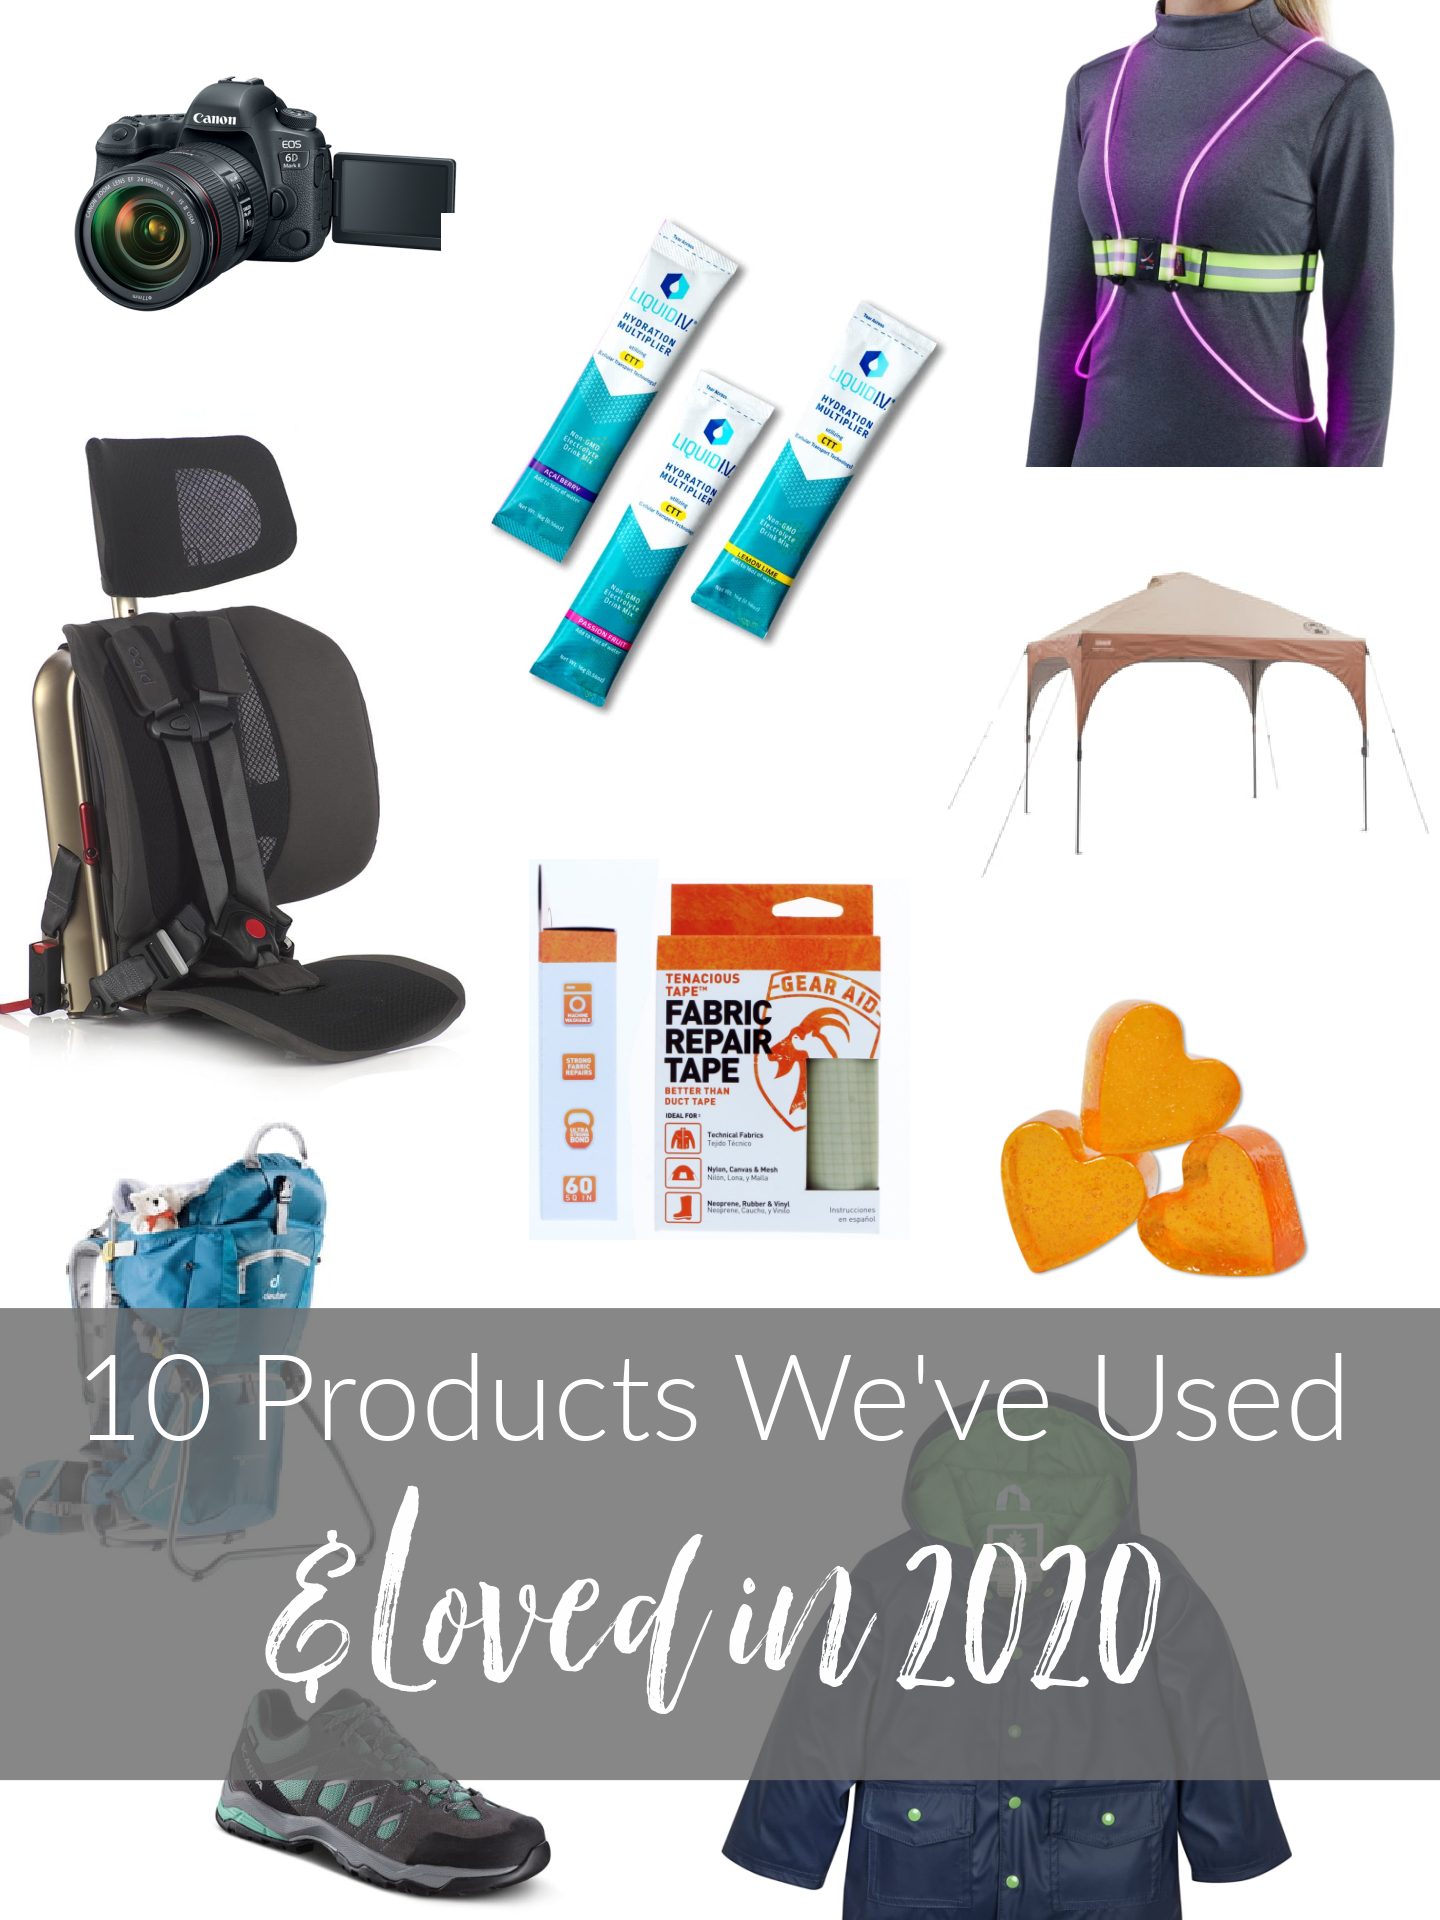 10 best products we've used in 2020